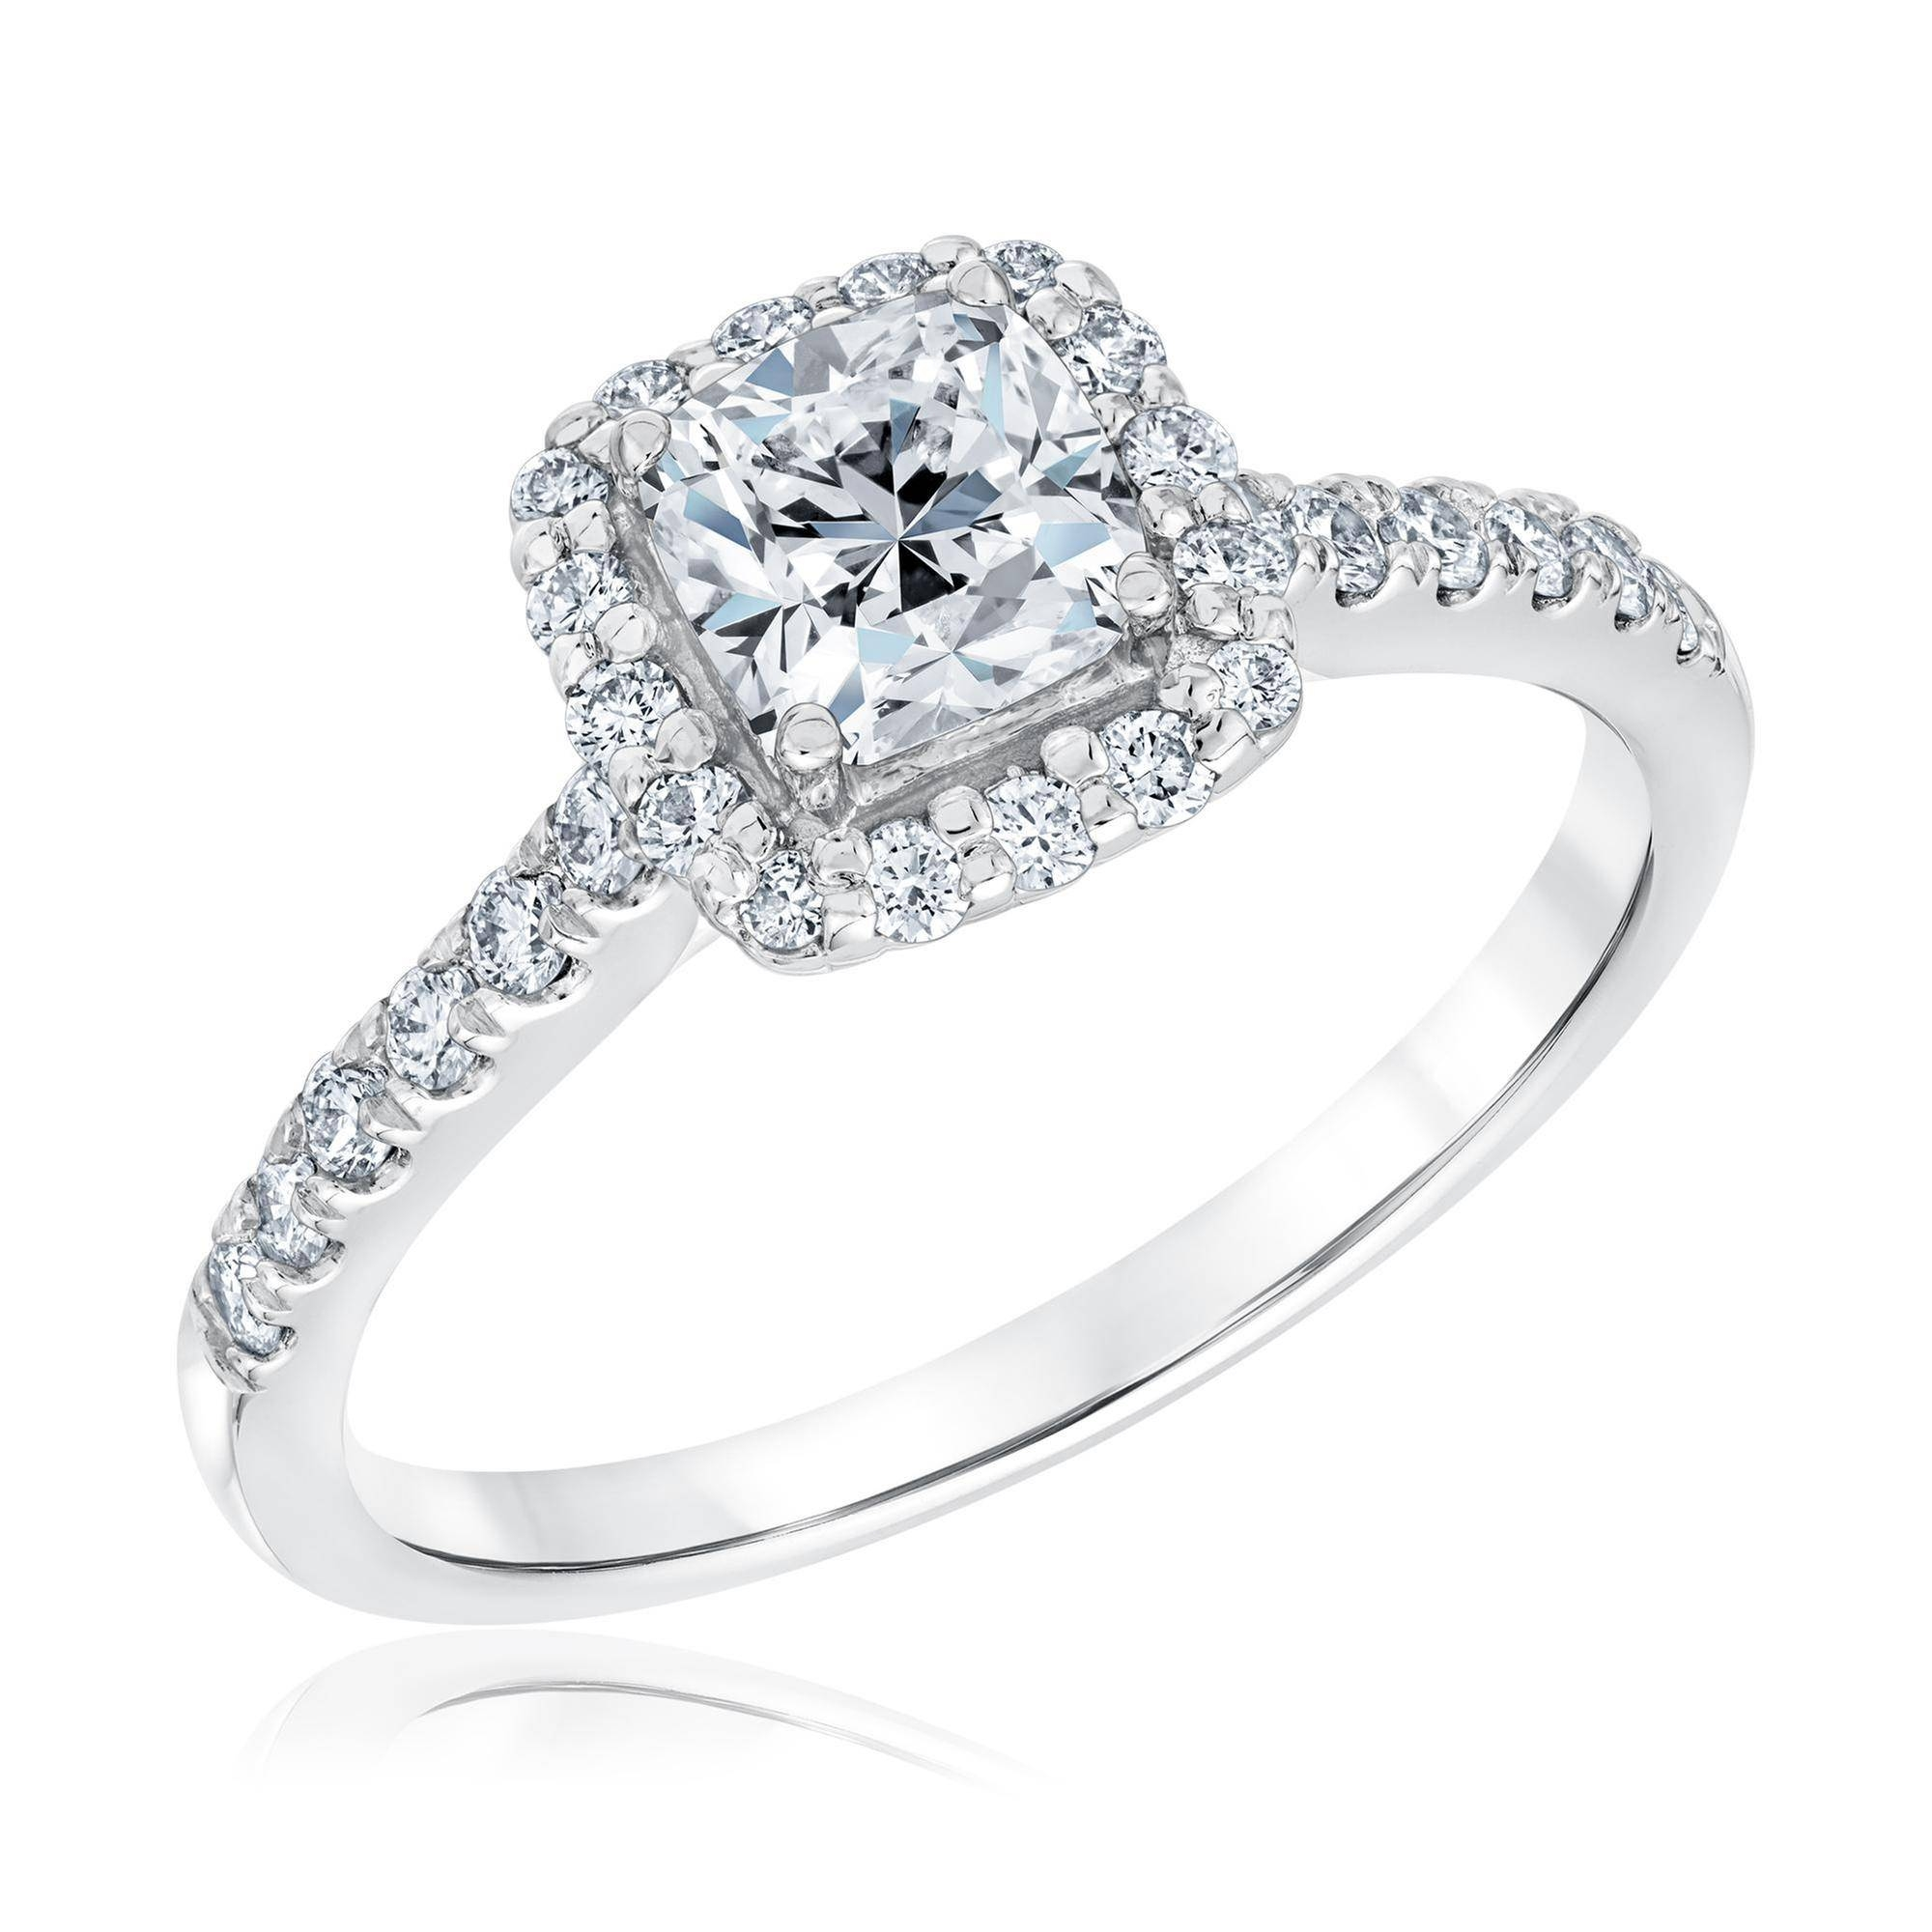 Diamond Engagement Rings San Diego Tags : Wedding Rings Tulsa Intended For San Diego Engagement Rings (Gallery 11 of 15)